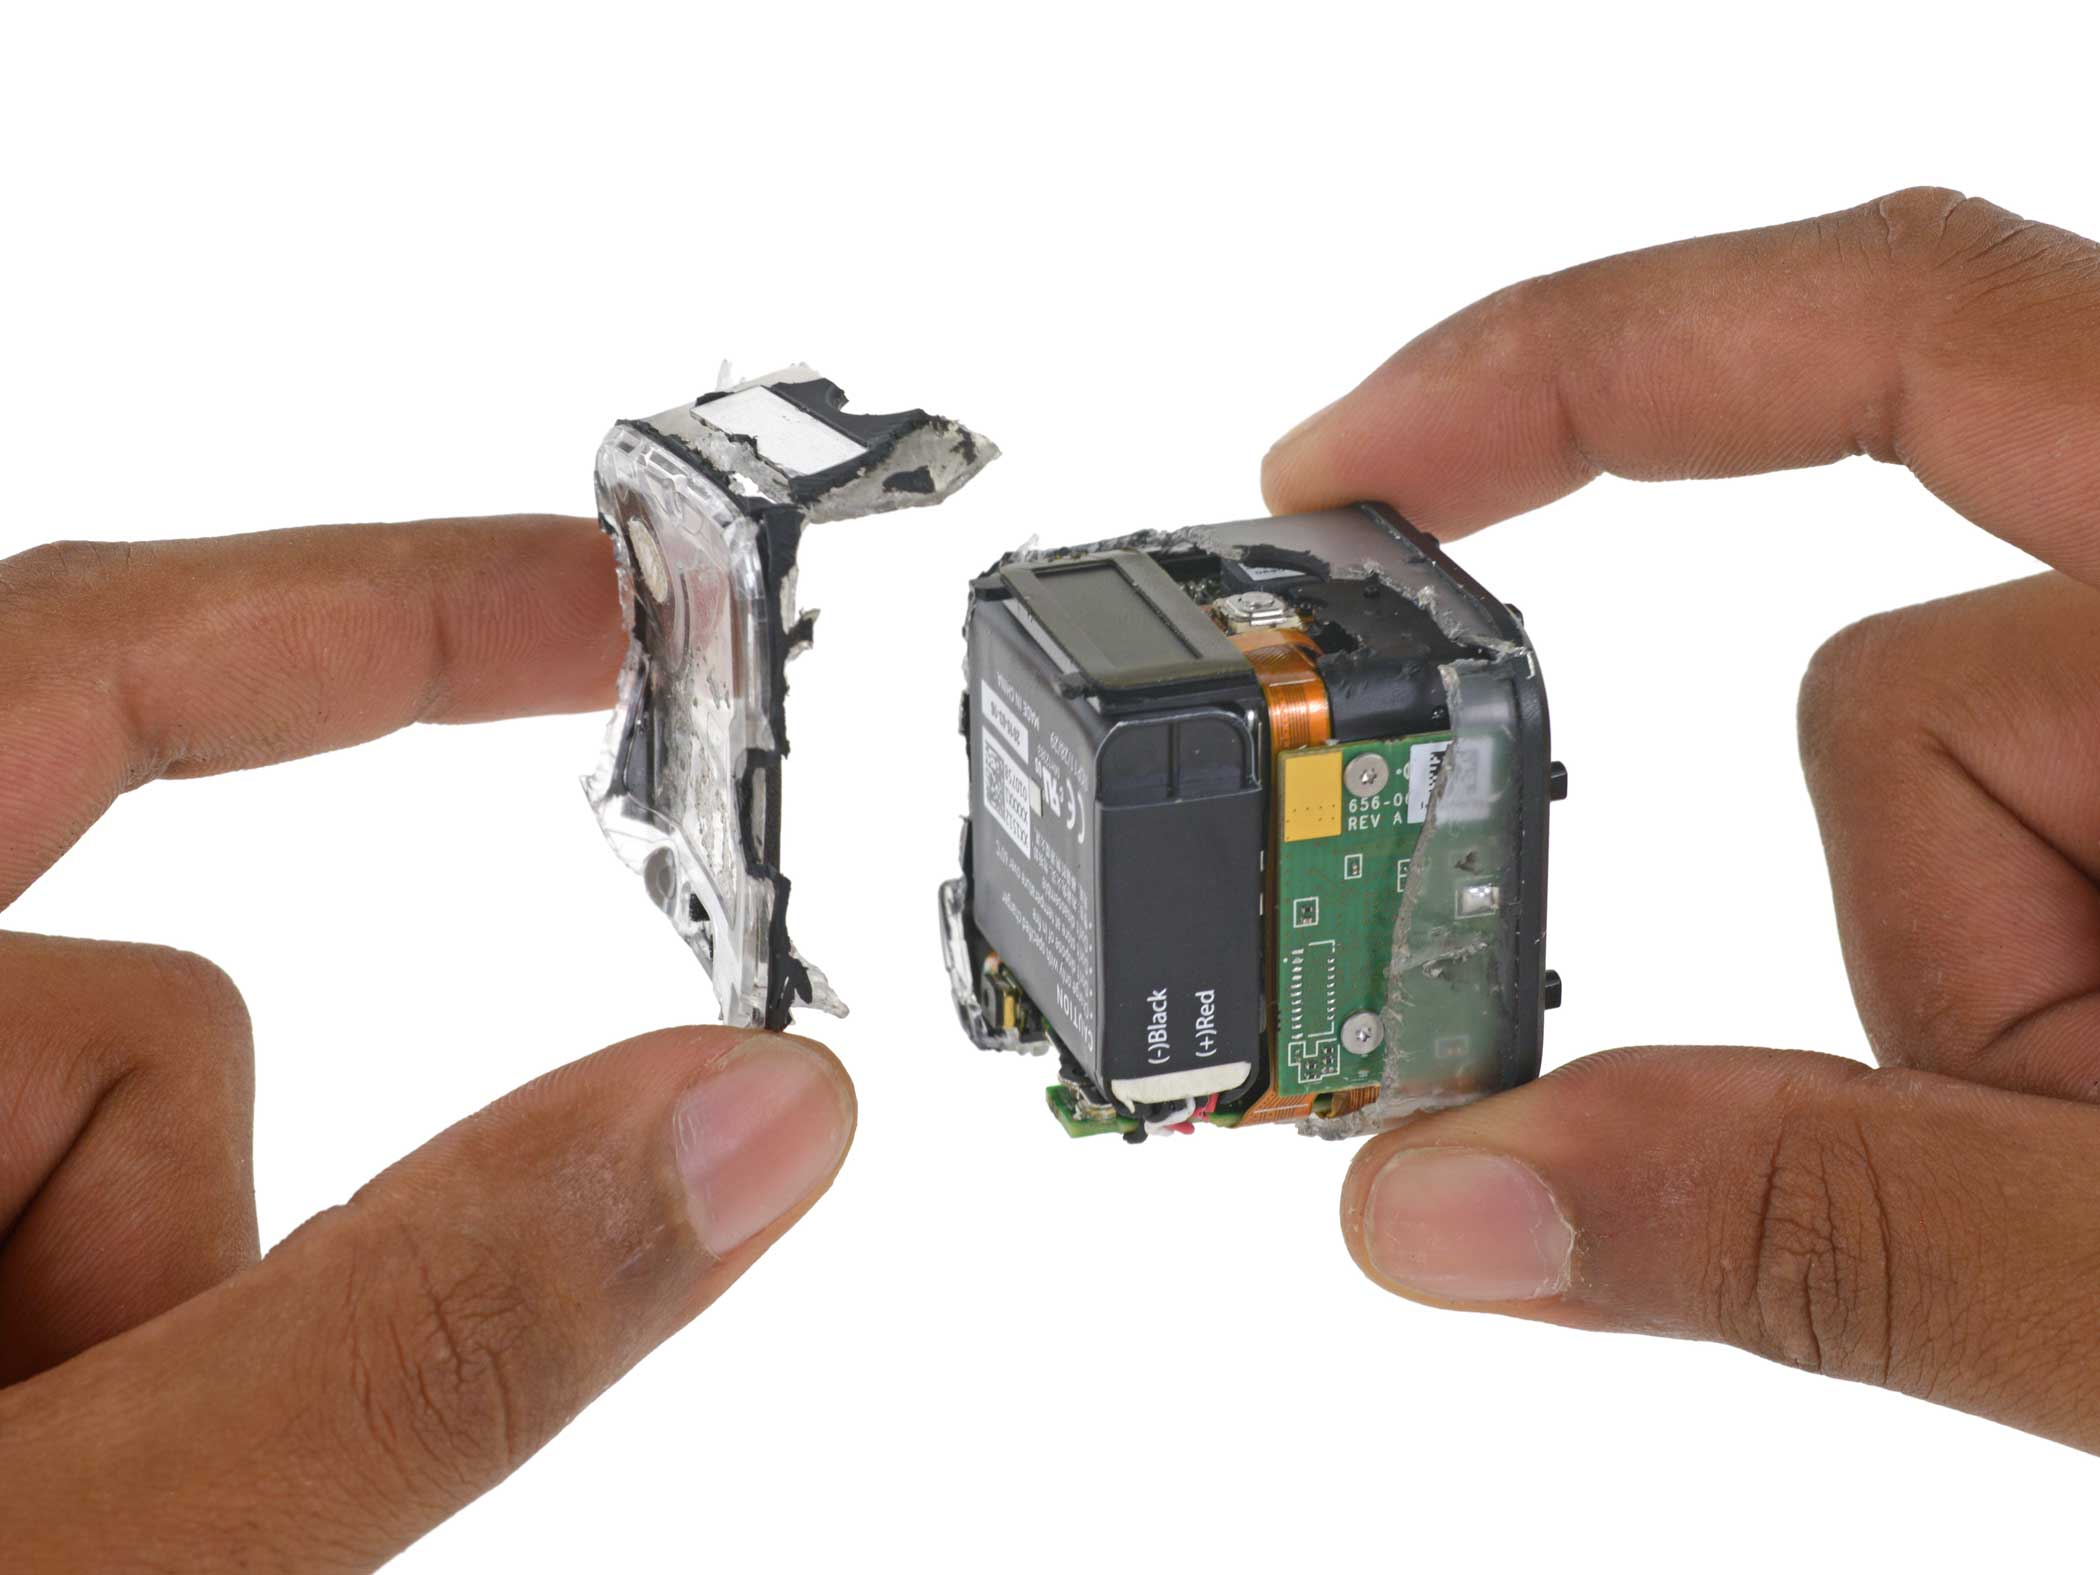 Cracking open the protective casing (don't try this at home) exposes the internal battery.